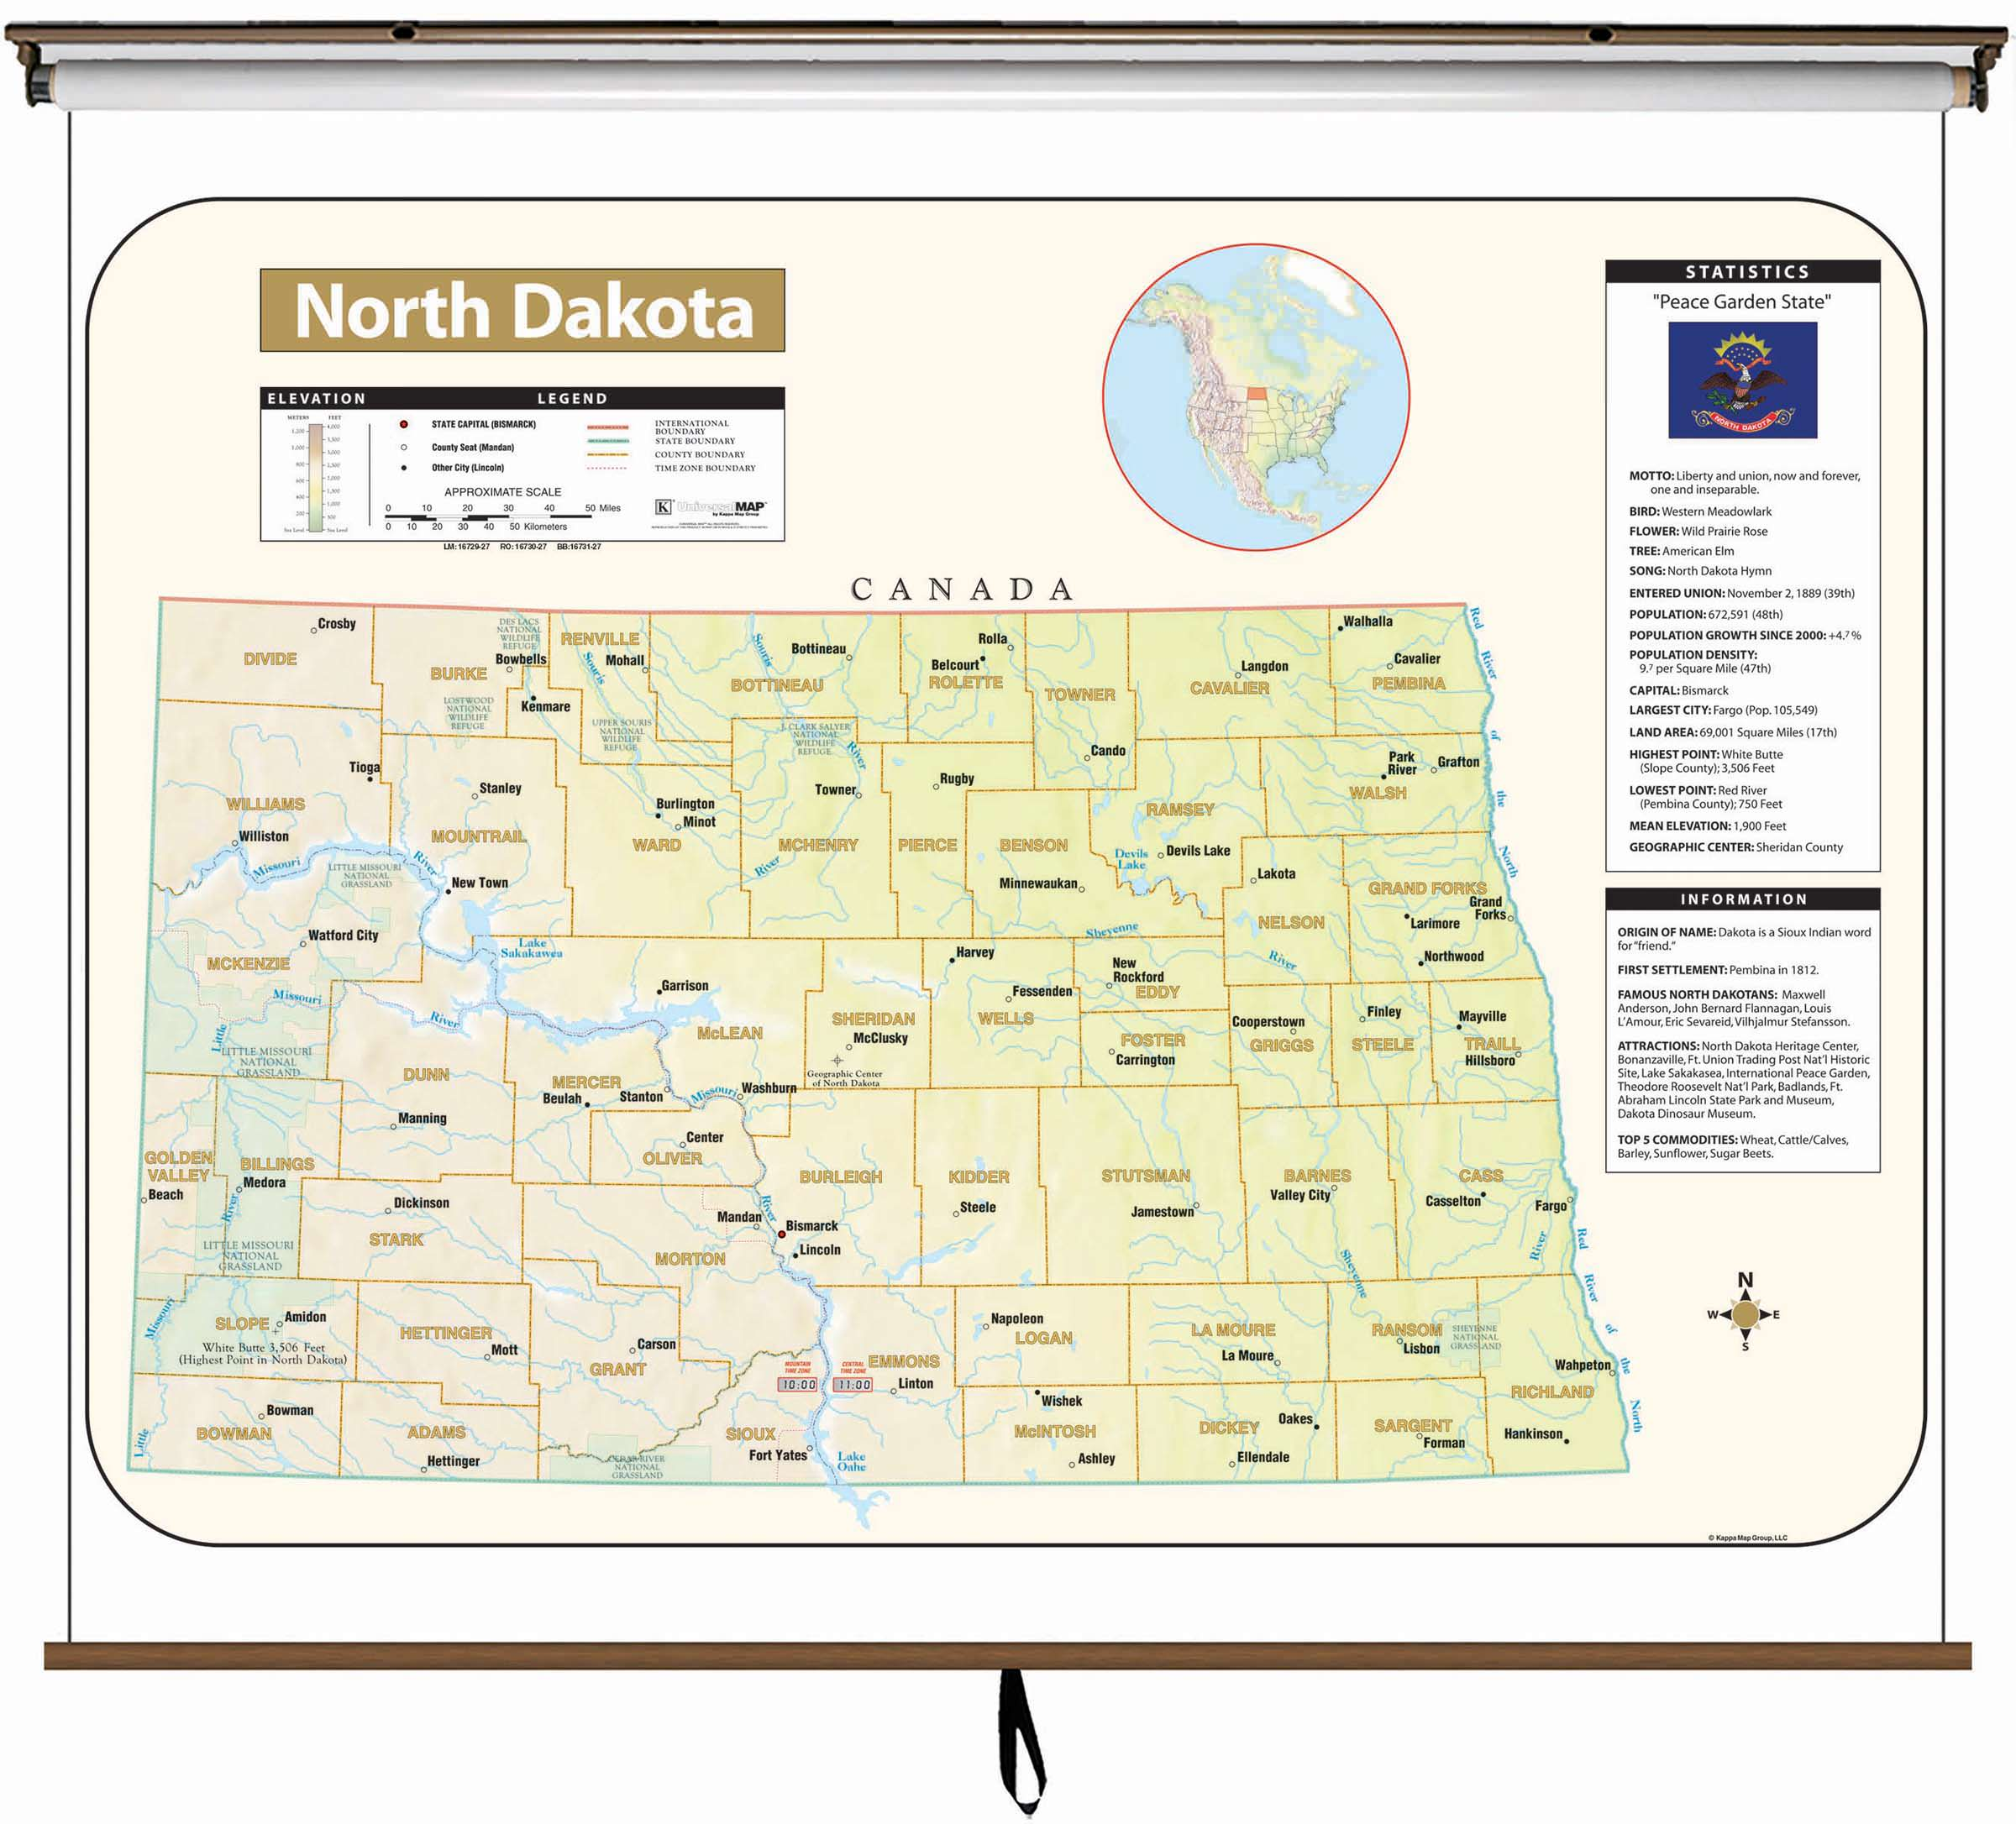 North Dakota Large Scale Shaded Relief Wall Map on Roller with ...